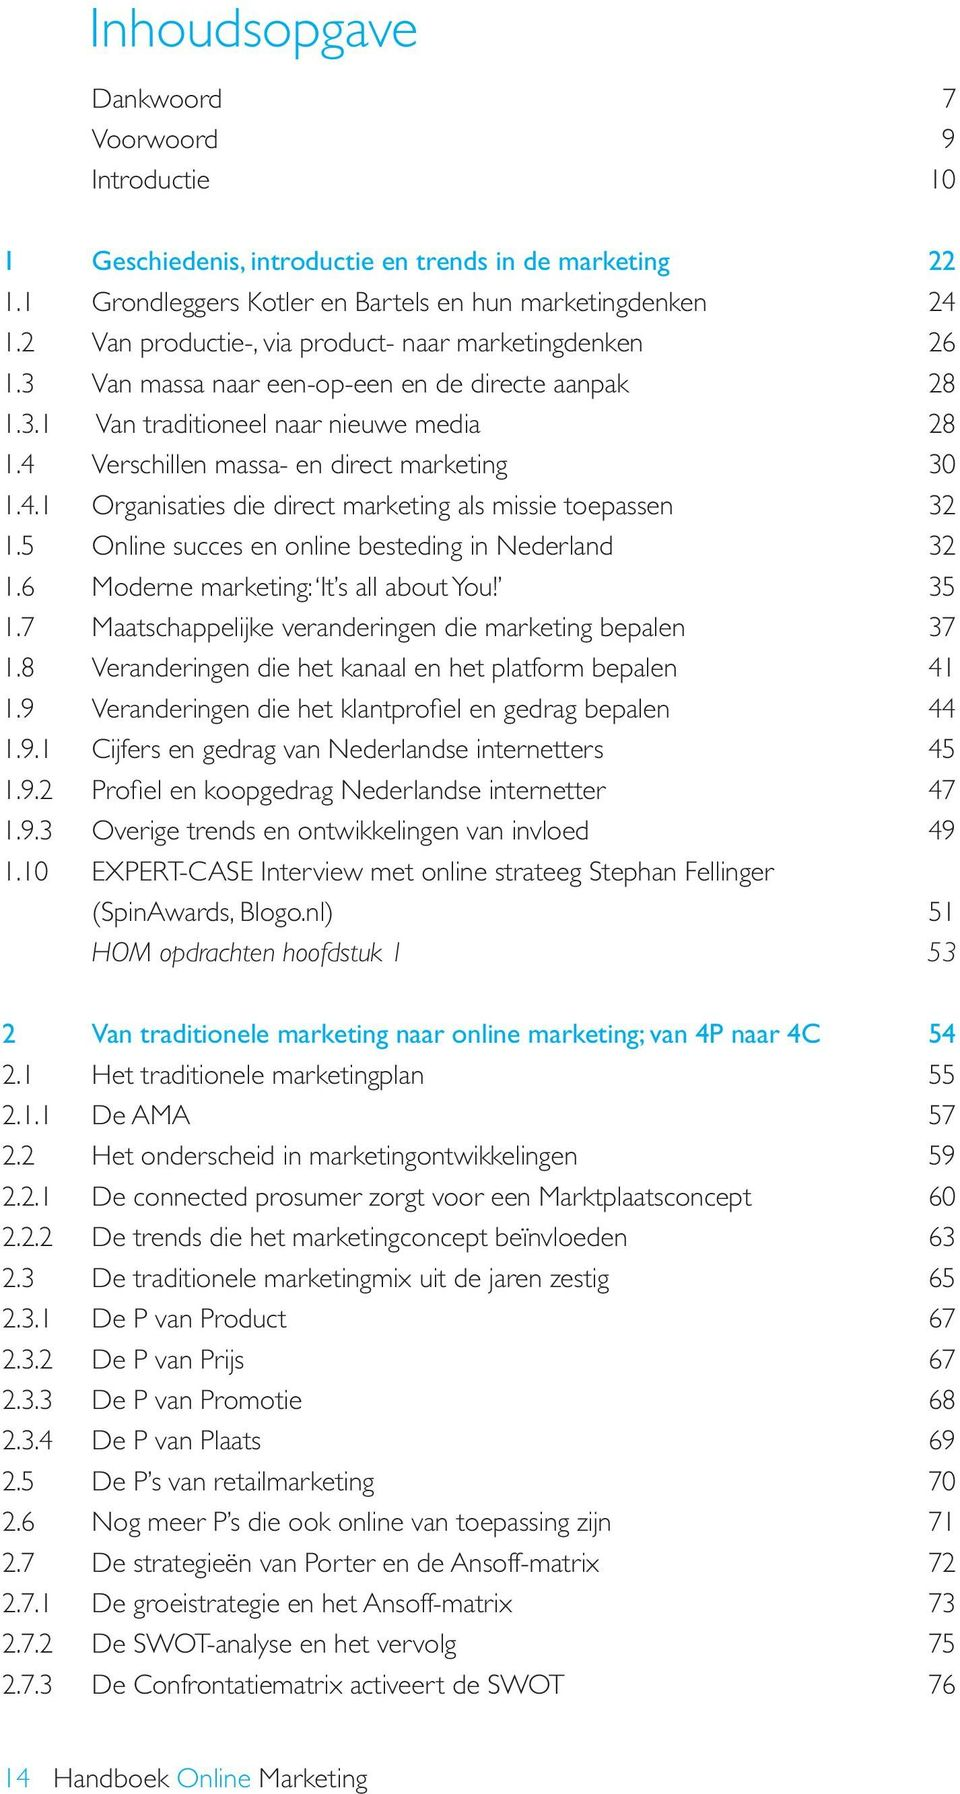 4 Verschillen massa- en direct marketing 30 1.4.1 Organisaties die direct marketing als missie toepassen 32 1.5 Online succes en online besteding in Nederland 32 1.